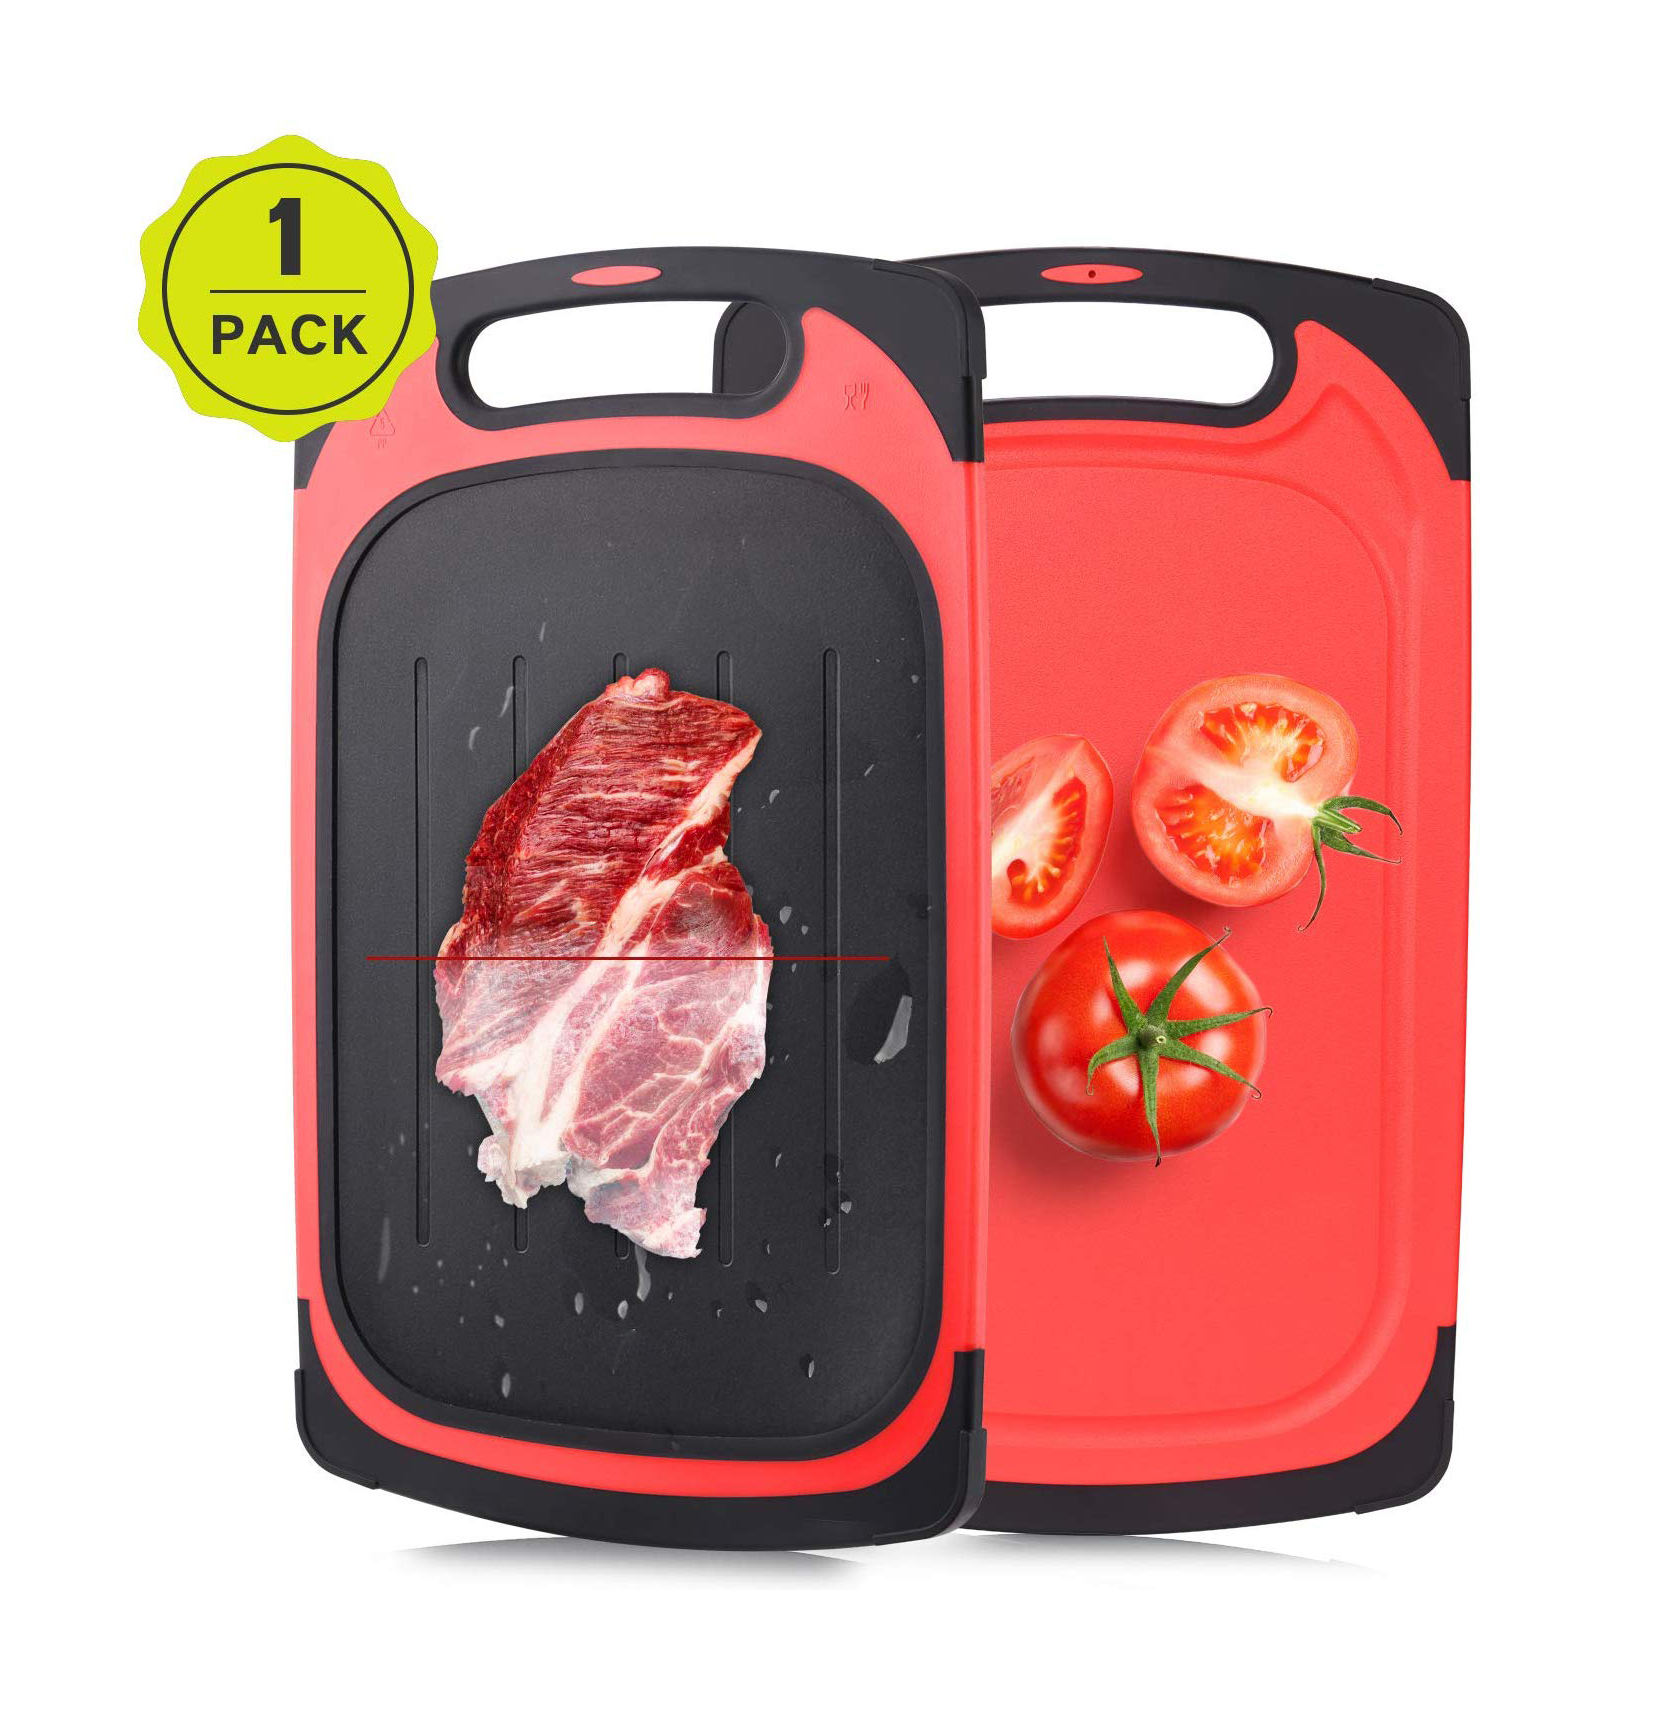 Amazon New 2 In 1 Thawing Tray Thaw Frozen Food Cutting Board Magic Defrosting Tray